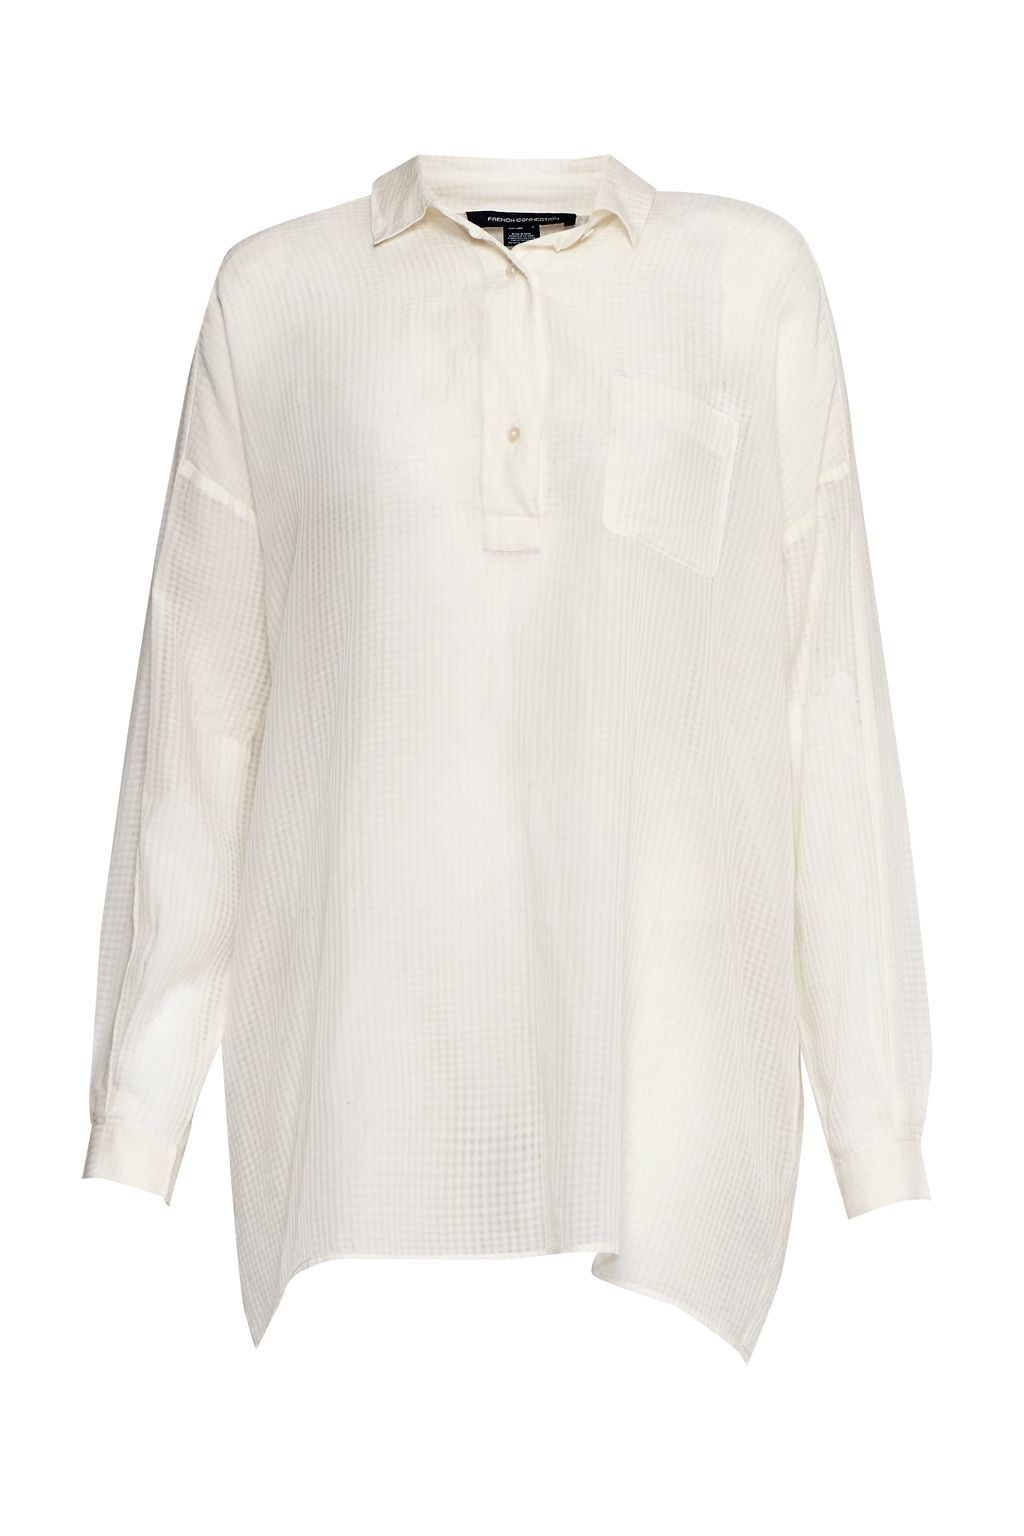 Sheer Check Pull Over Shirt, White - neckline: shirt collar/peter pan/zip with opening; pattern: plain; style: shirt; predominant colour: white; occasions: casual; length: standard; fibres: cotton - 100%; fit: body skimming; sleeve length: long sleeve; sleeve style: standard; texture group: cotton feel fabrics; pattern type: fabric; wardrobe: basic; season: a/w 2016